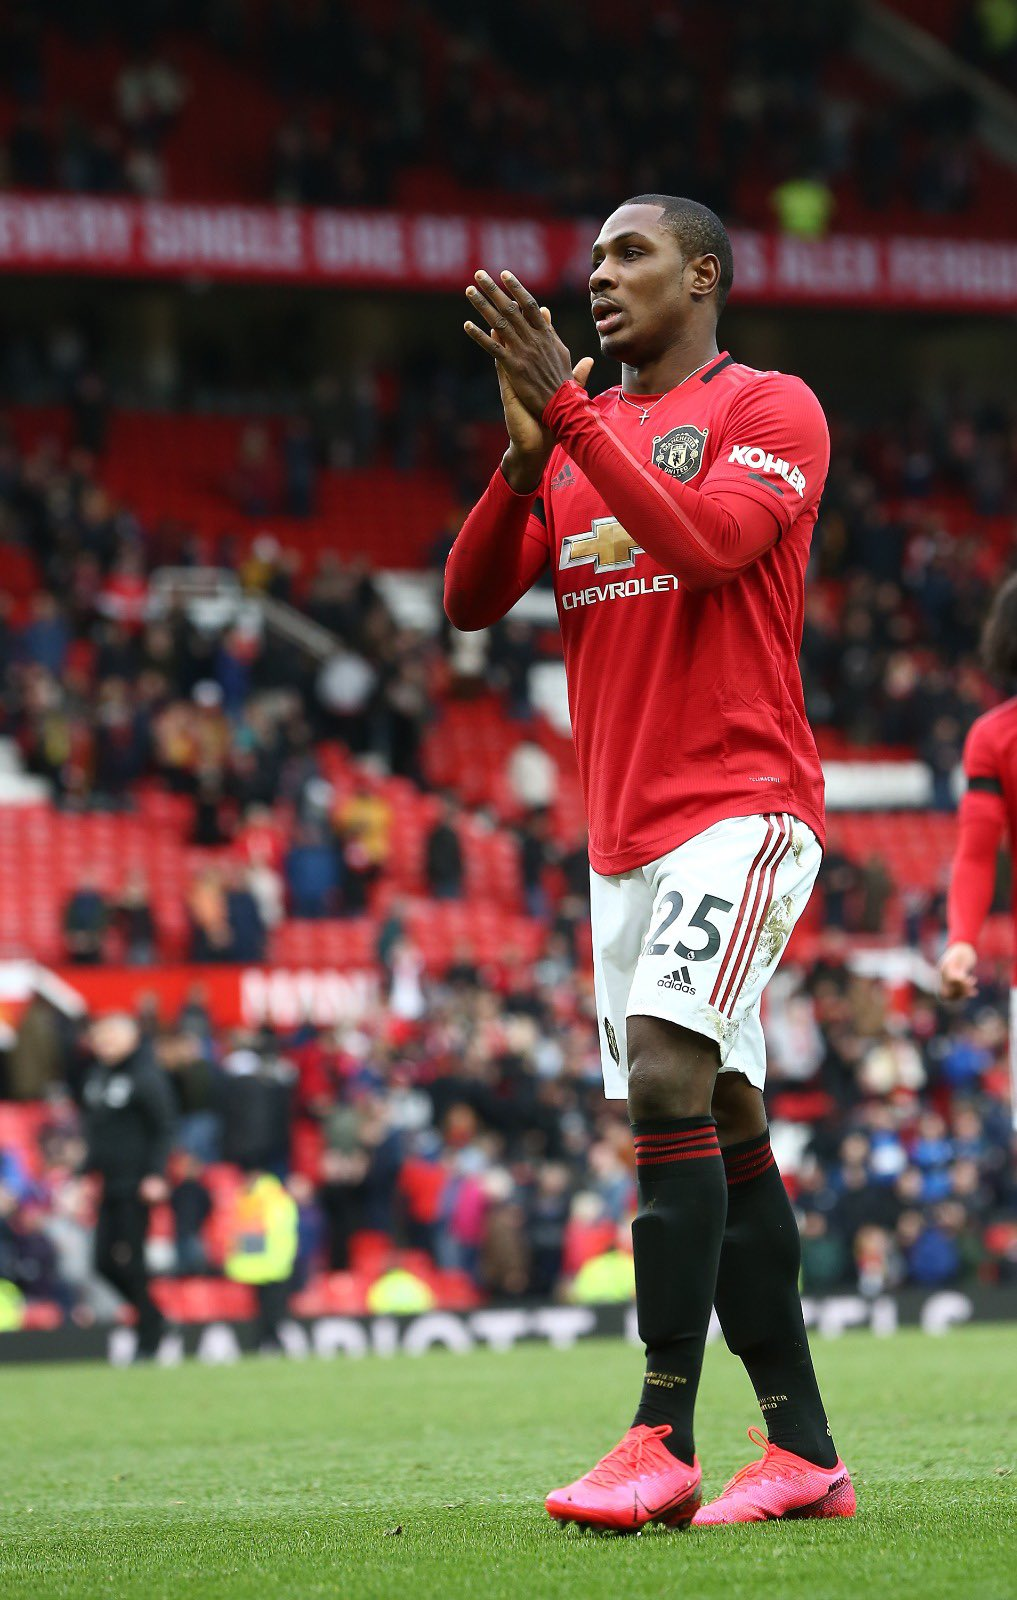 EPL: Ighalo Denied By Pickford As Everton, Man United Share The Spoils At Goodison Park